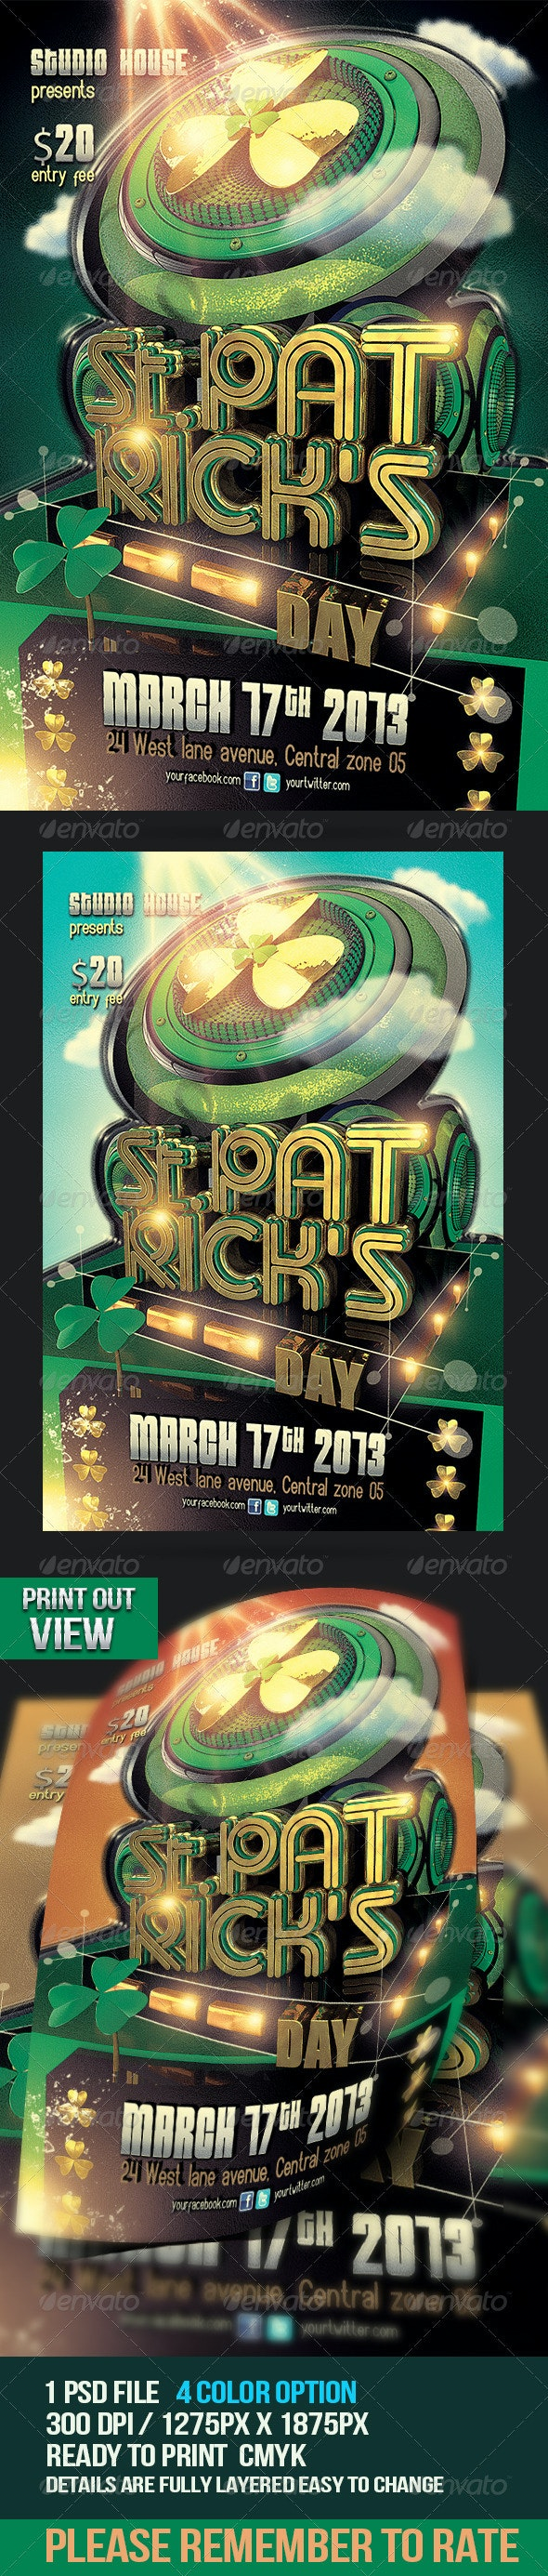 St. Patricks Day Party Flyer - Holidays Events